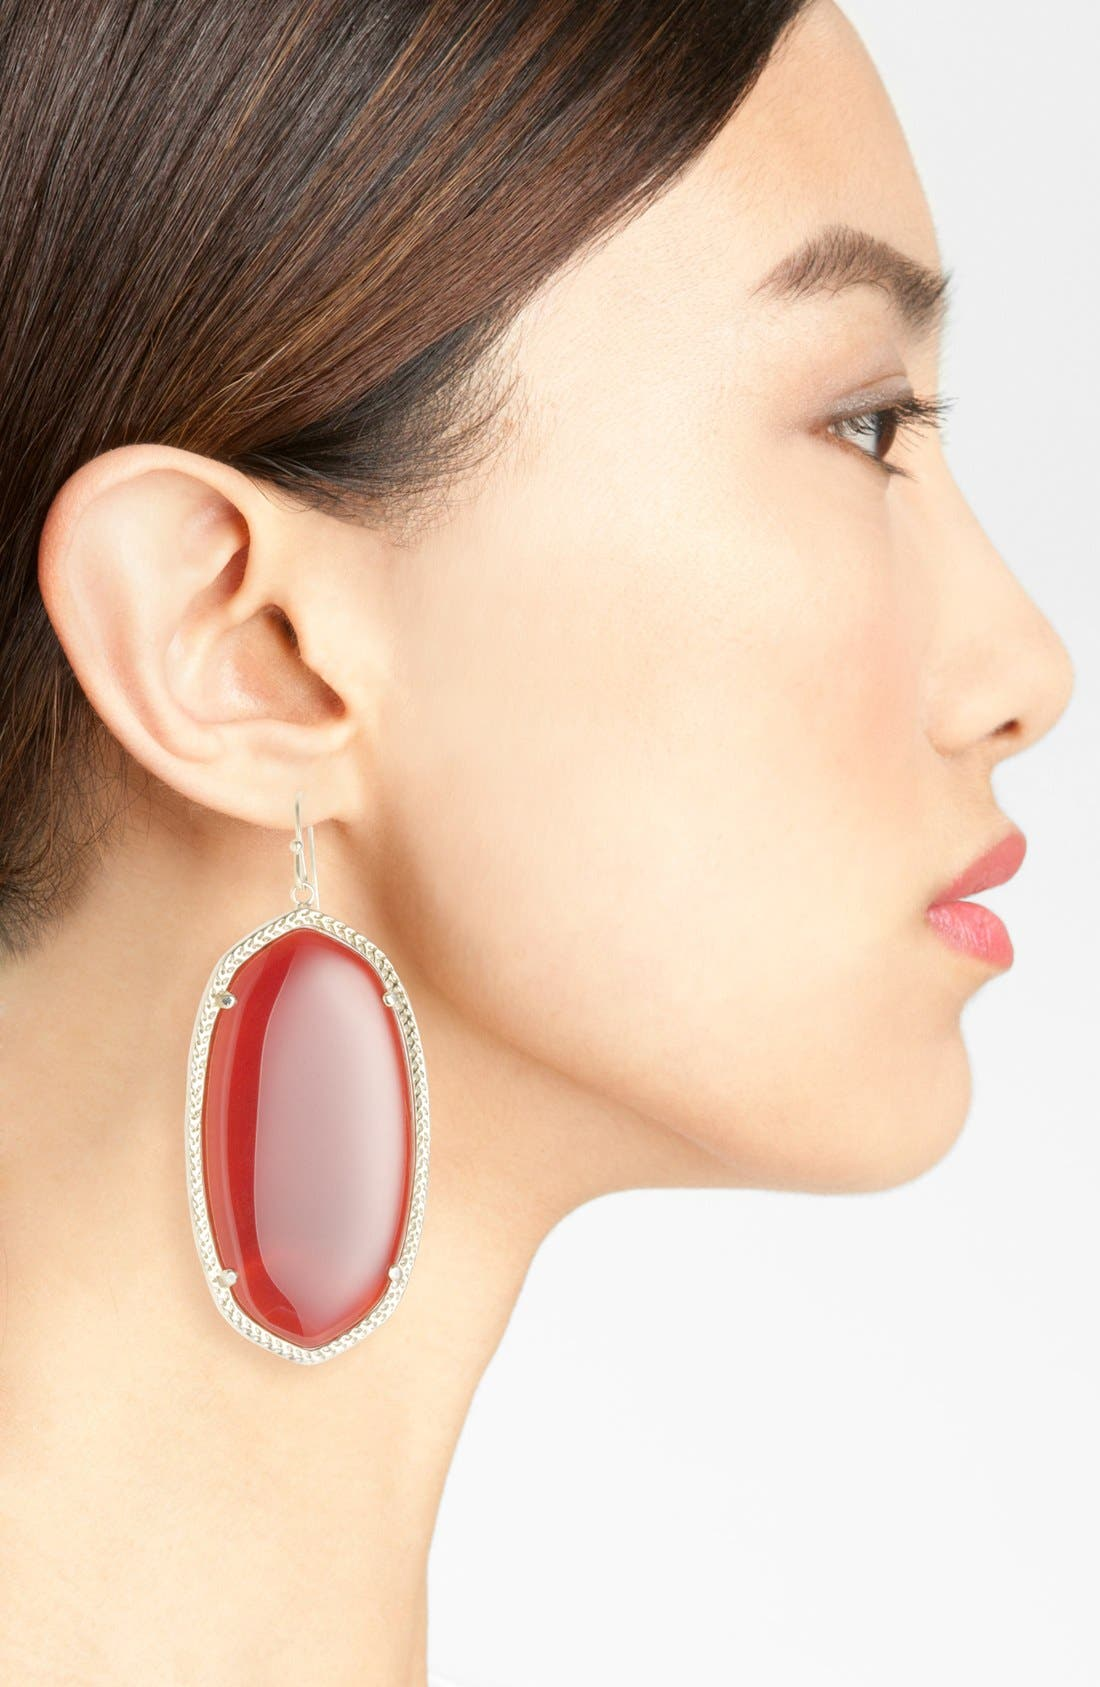 Danielle - Large Oval Statement Earrings,                             Alternate thumbnail 165, color,